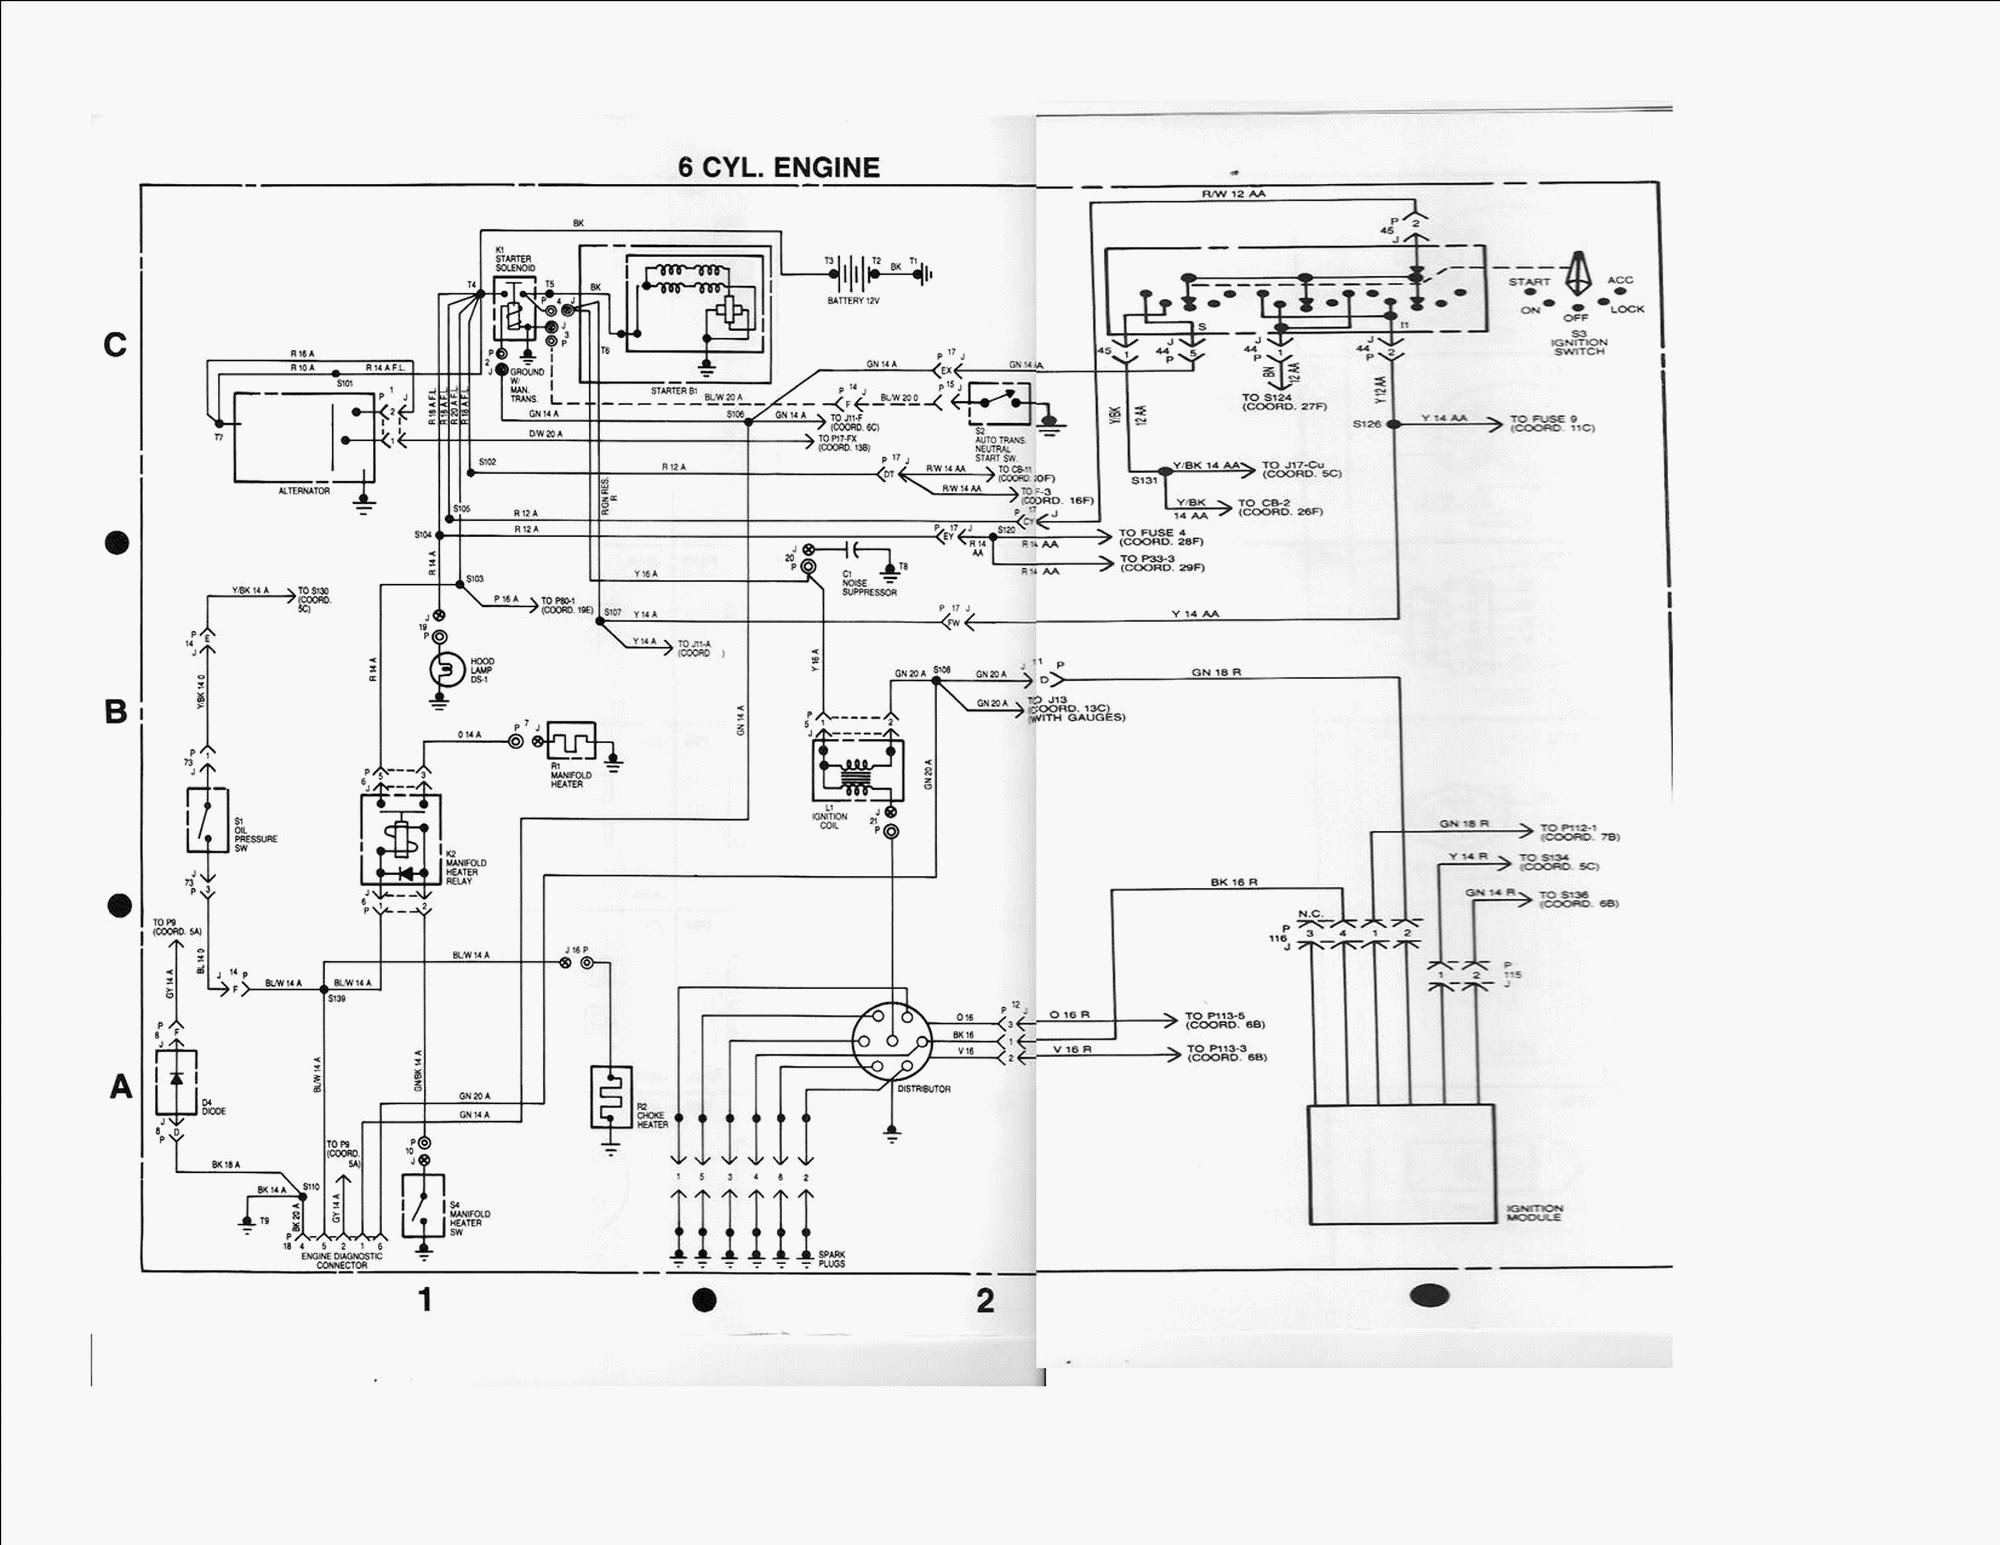 1968 Amx Wiring Diagram Rover 414 Wiring Diagram Rccar Wiring Ajingemut Decorresine It